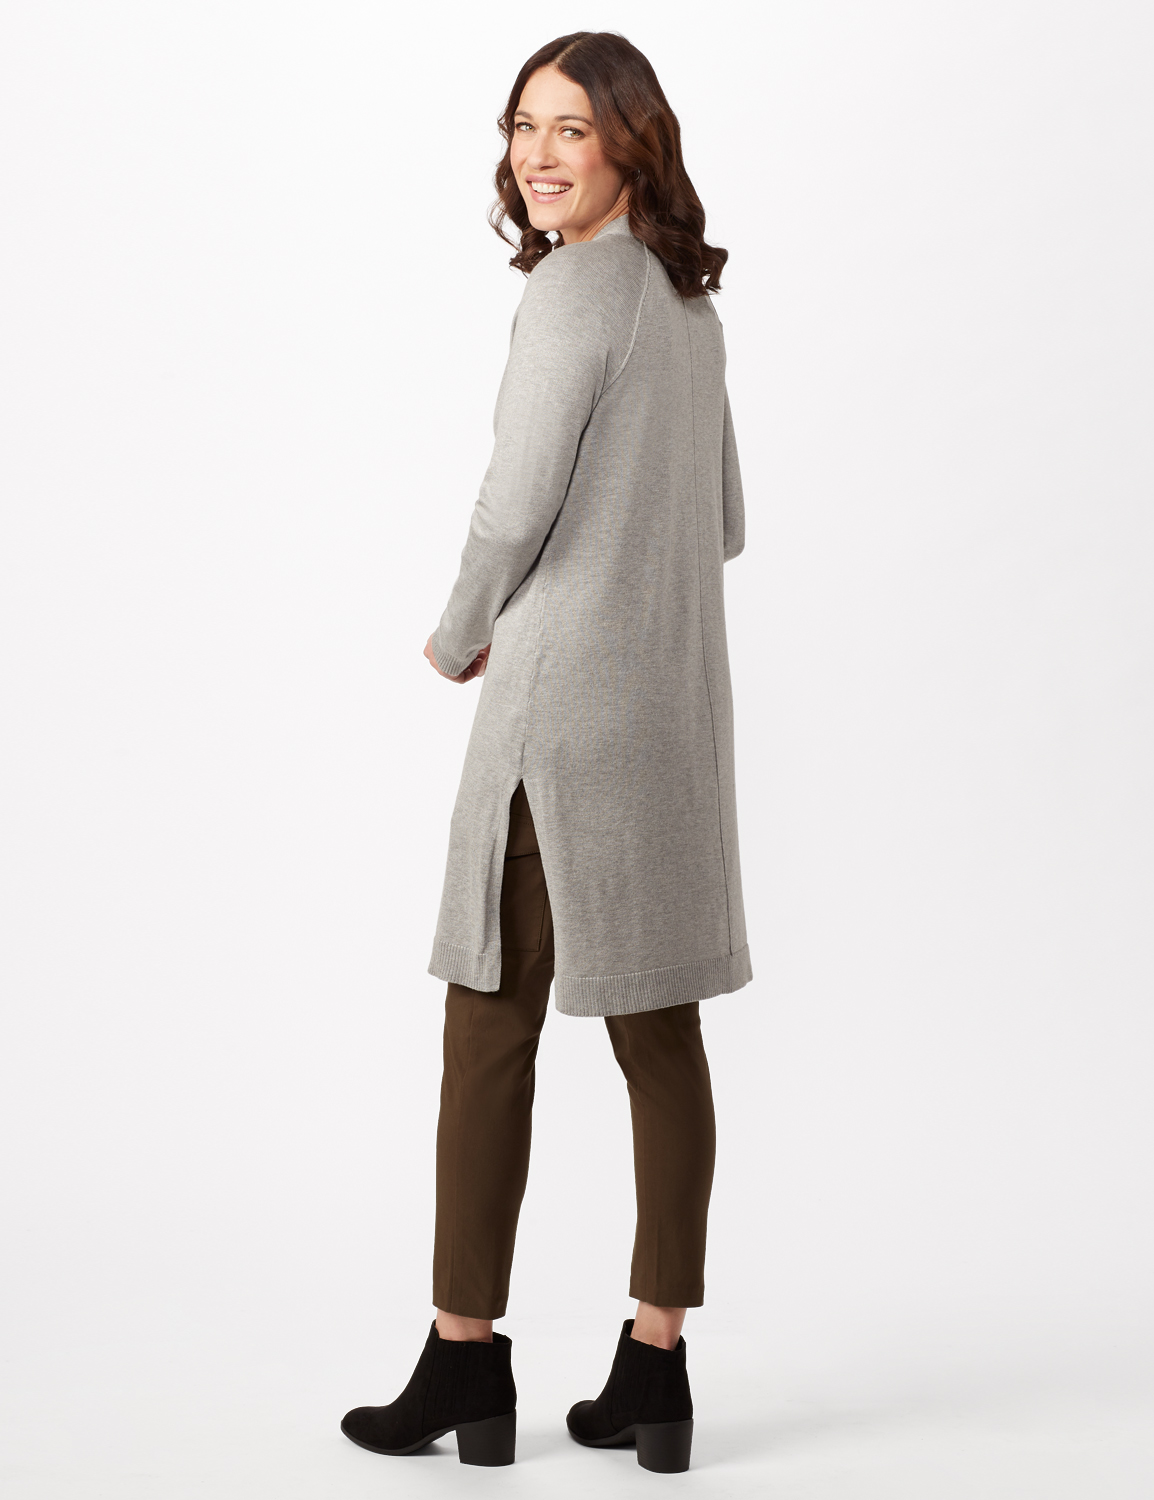 Long Sleeve Duster with Side Slits -Heather Grey - Back